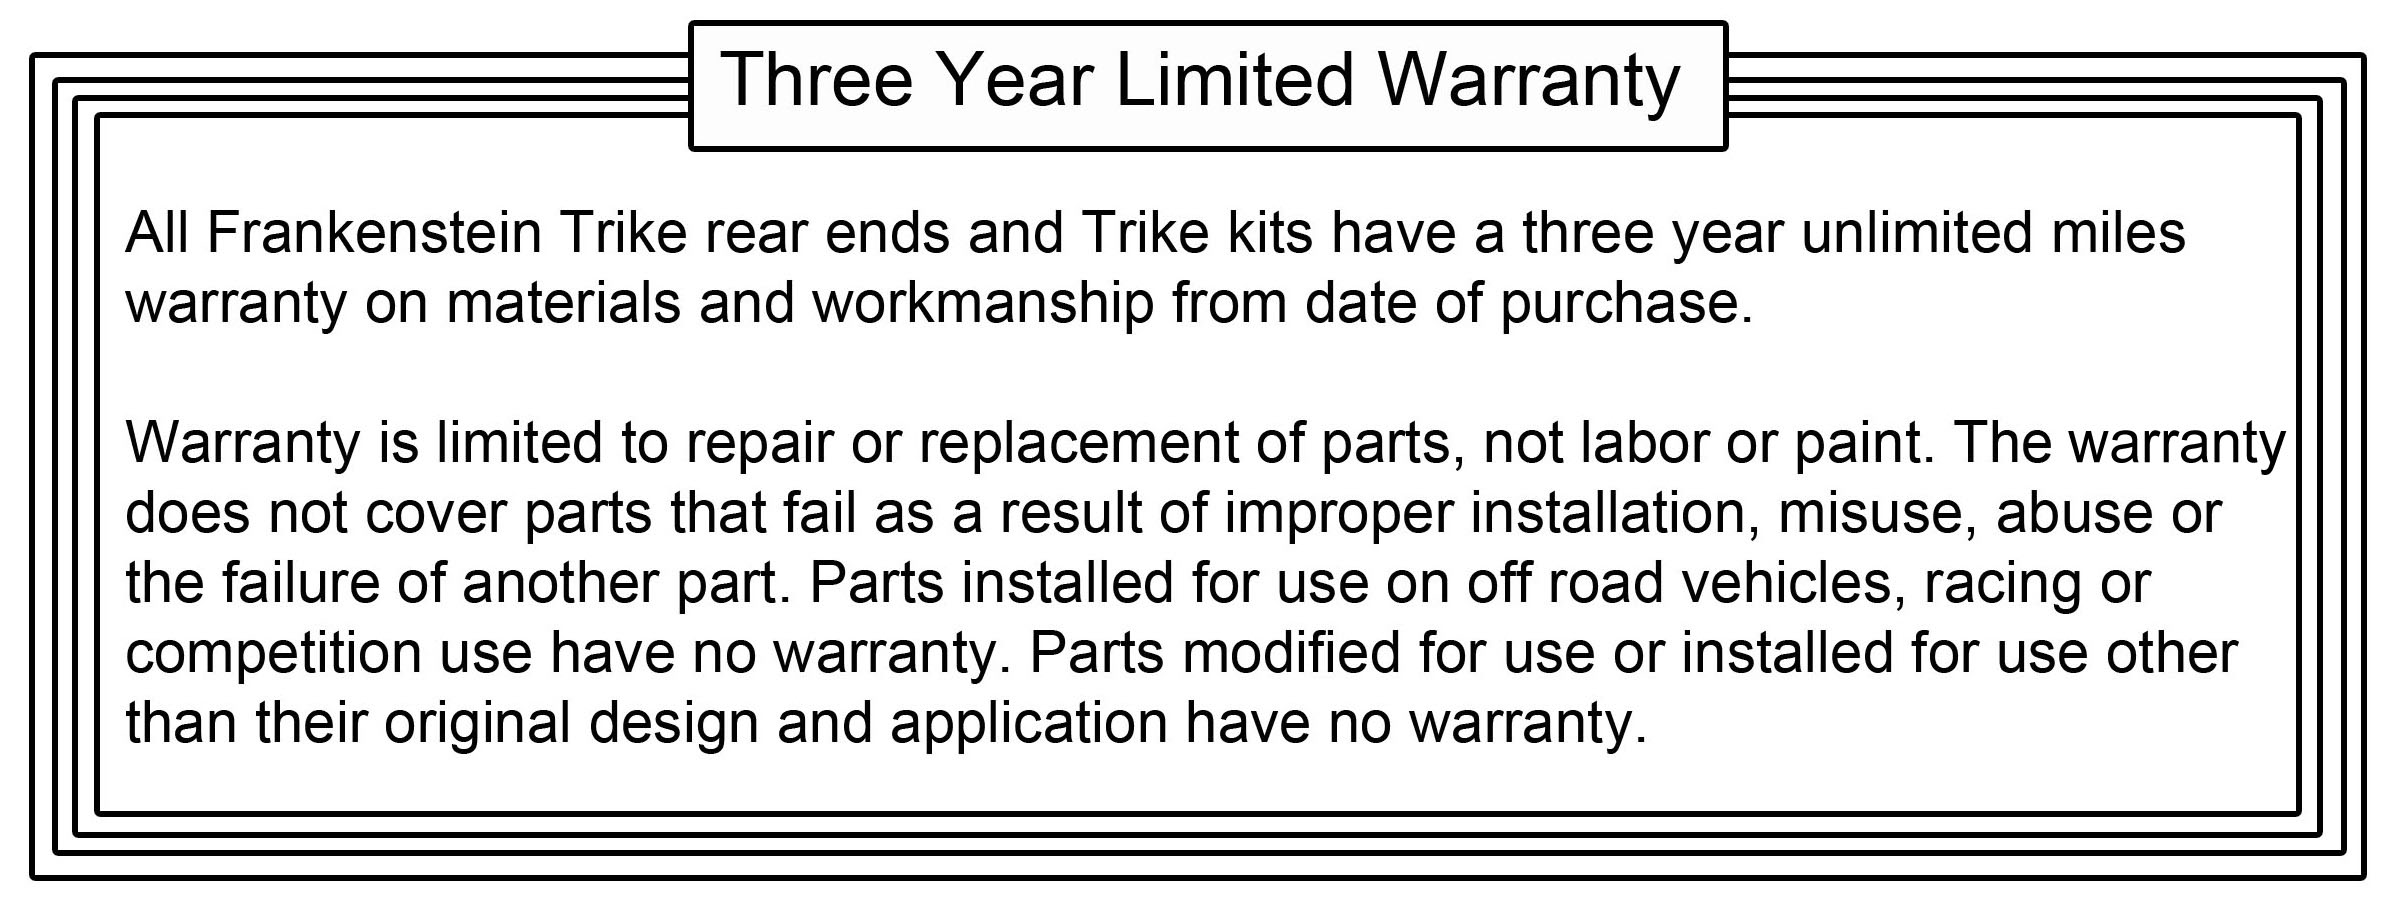 frankenstein trikes 1 year warranty